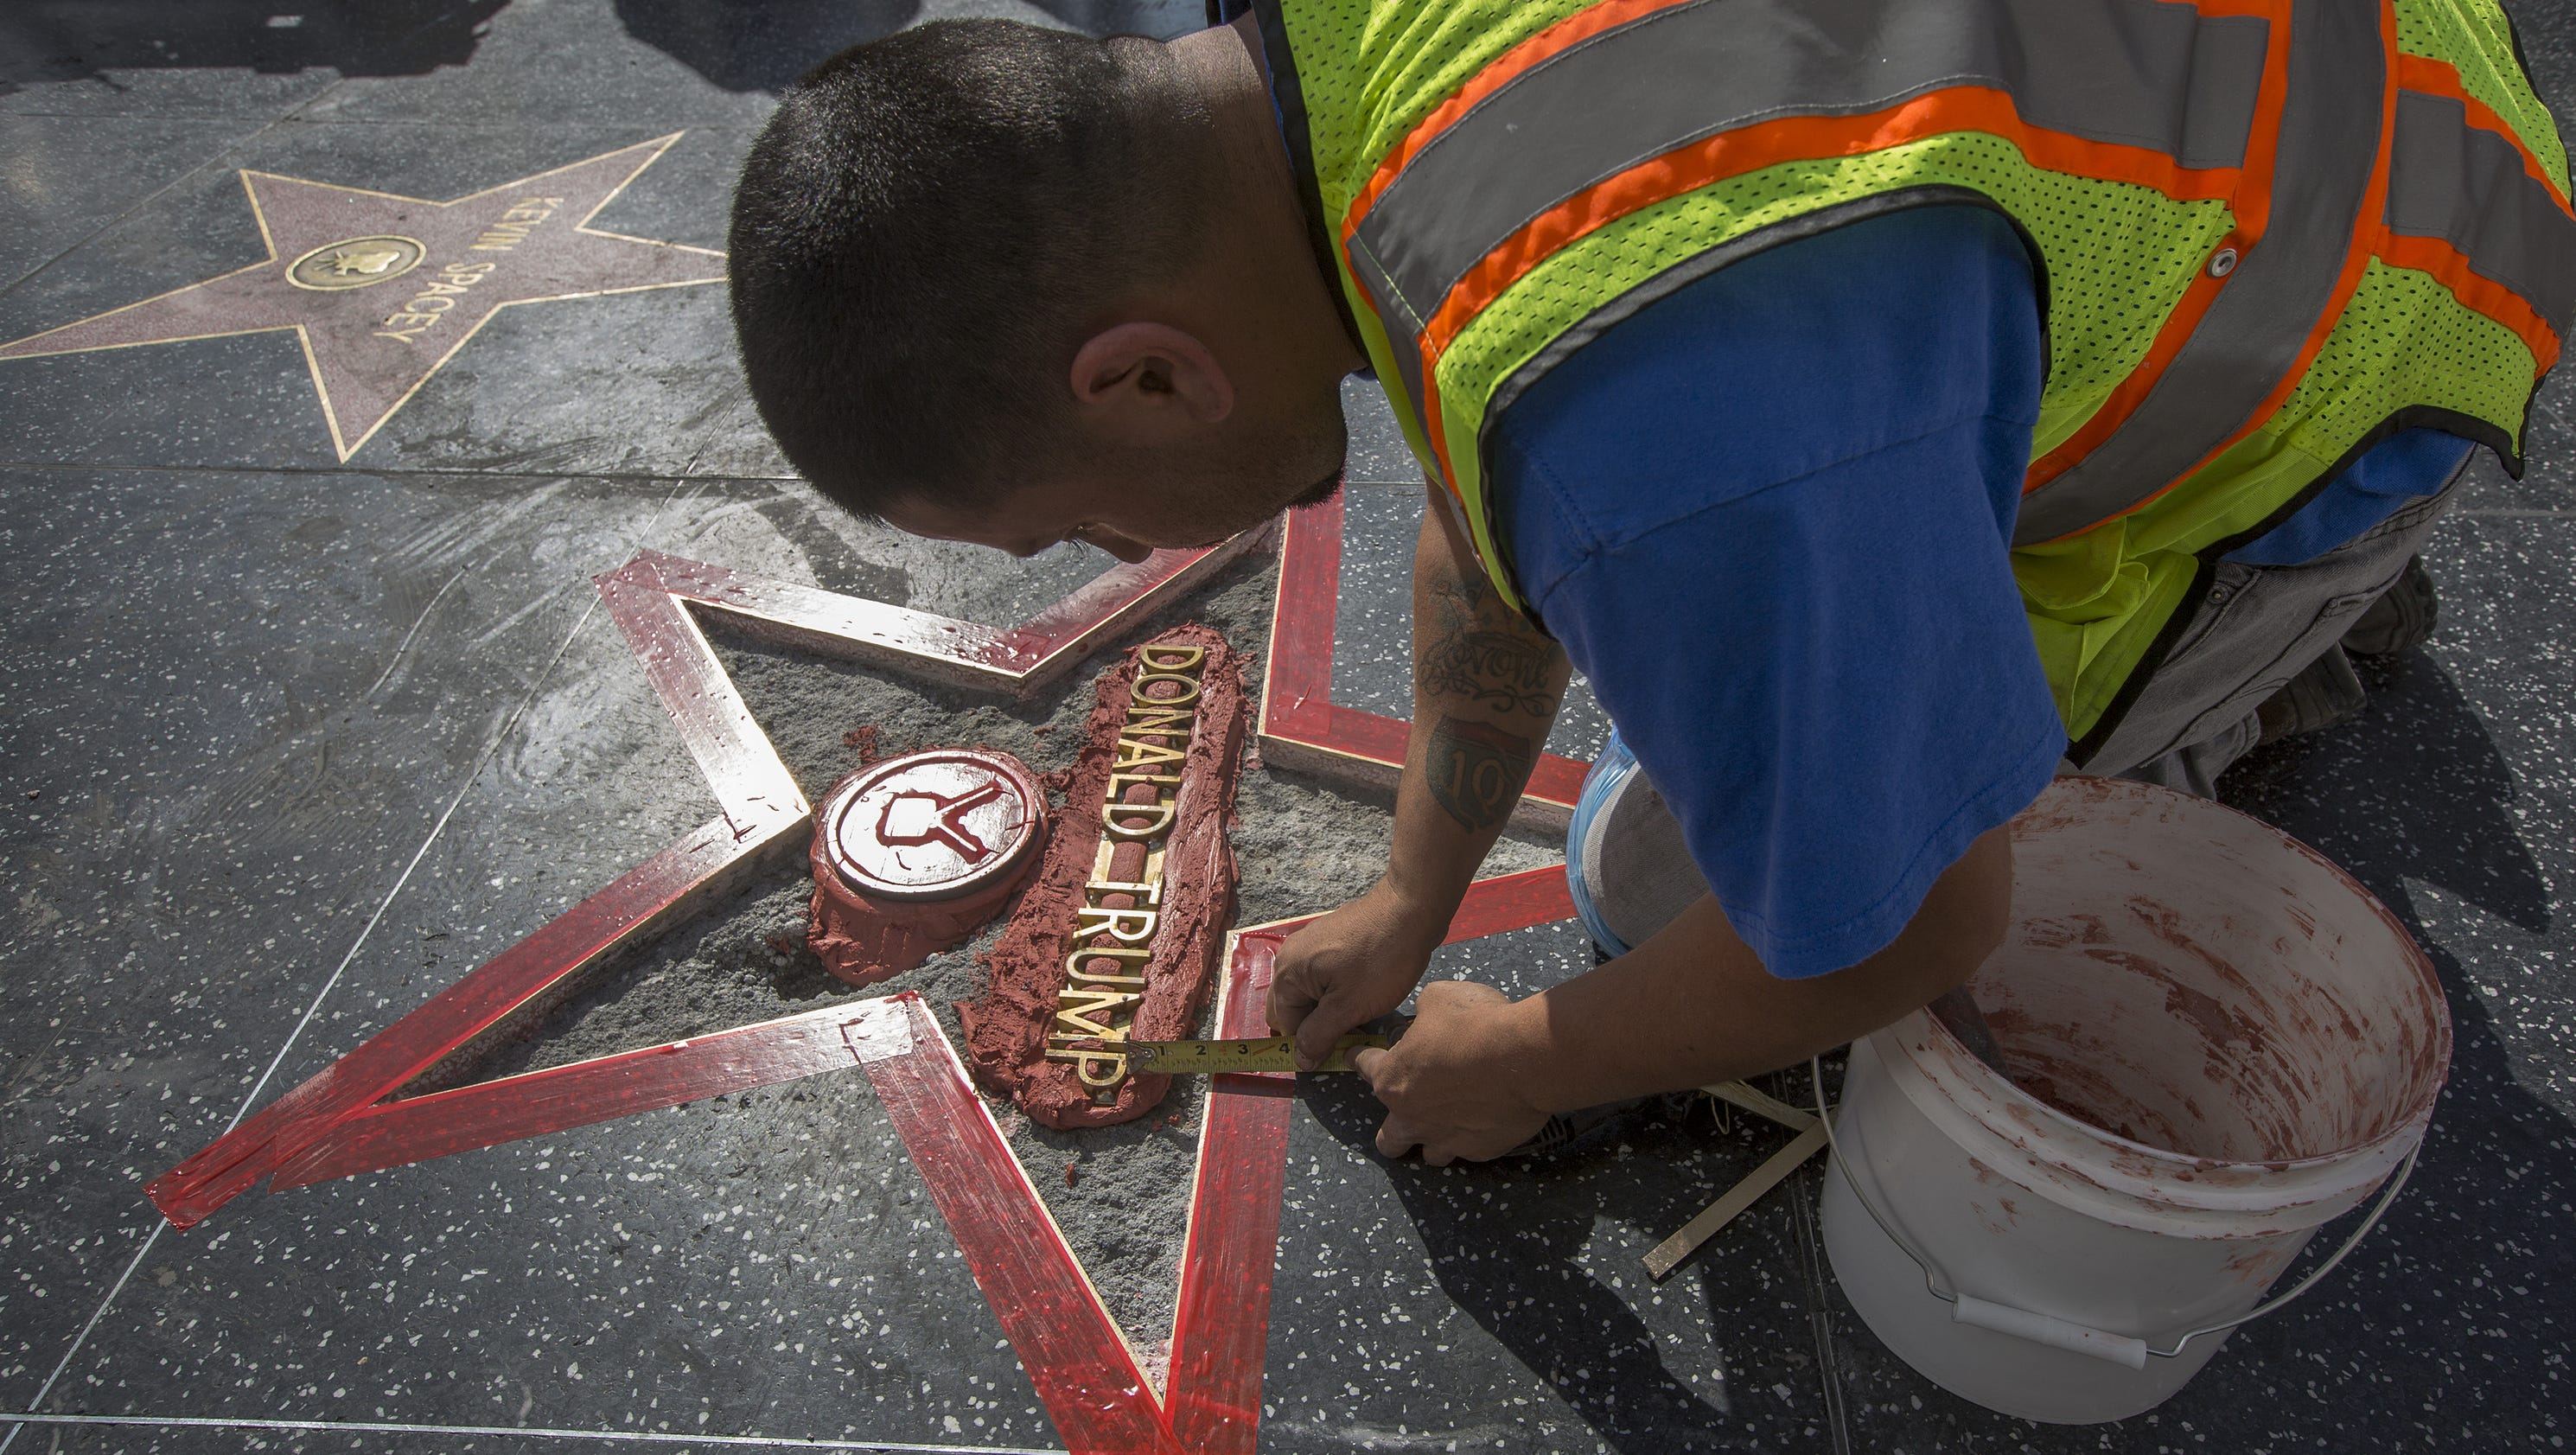 Lapd Arrests Suspect In Trump Walk Of Fame Vandalism Case